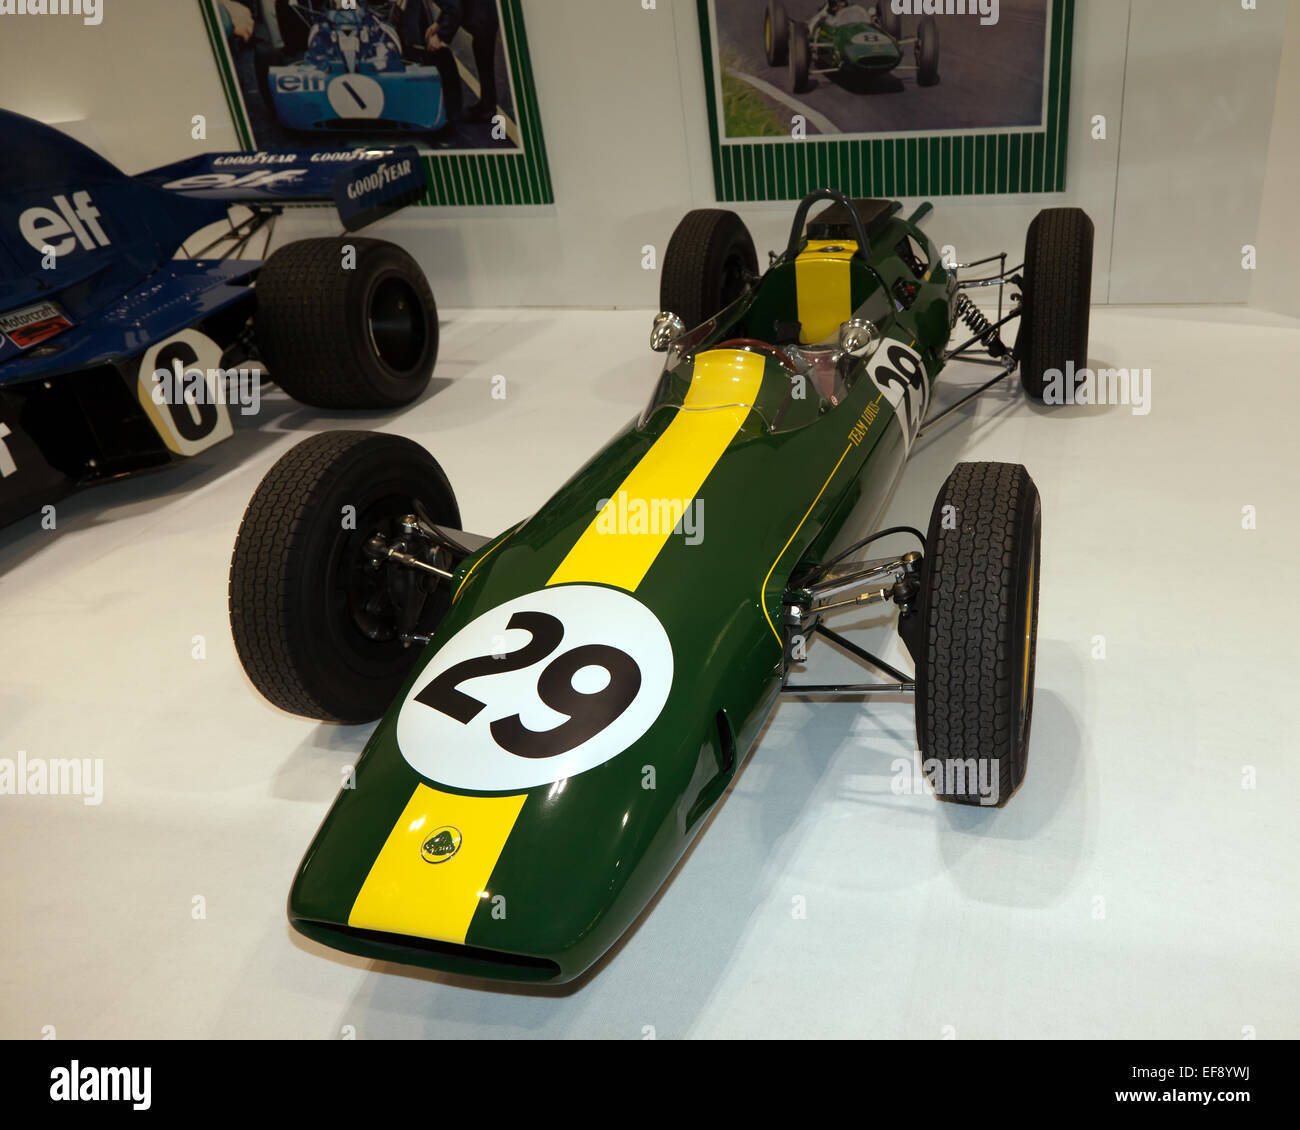 Jim Clark's 1962/63 Lotus 25: the car he won his first F1 world title in. - Stock Image